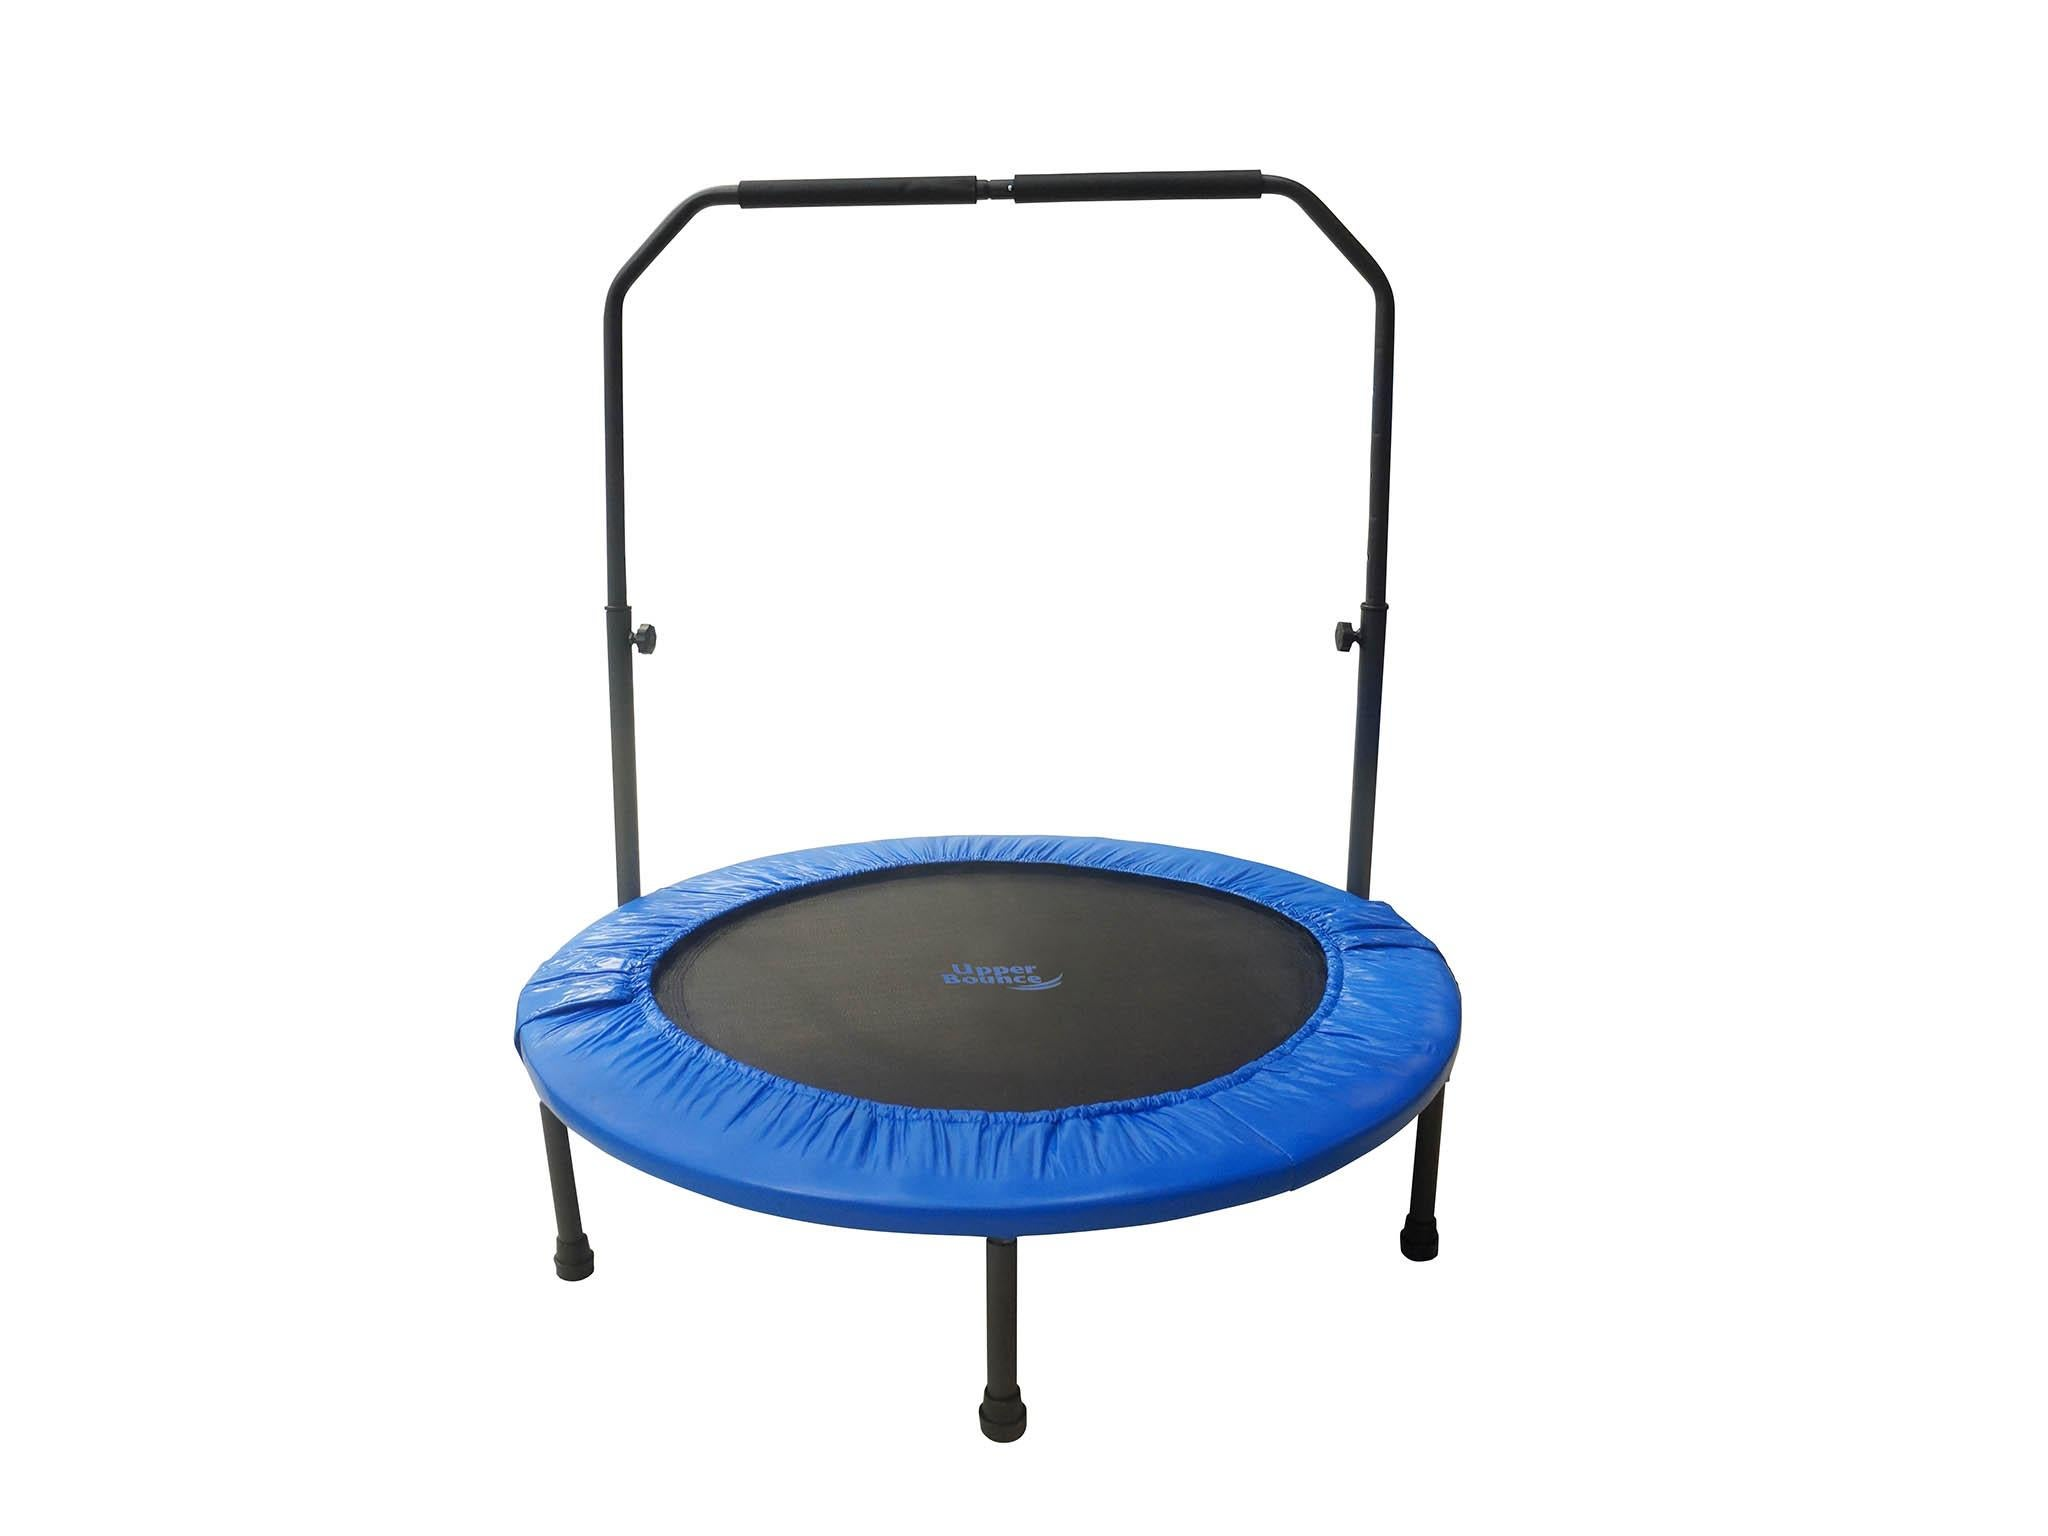 10 best trampolines to keep kids entertained in the garden